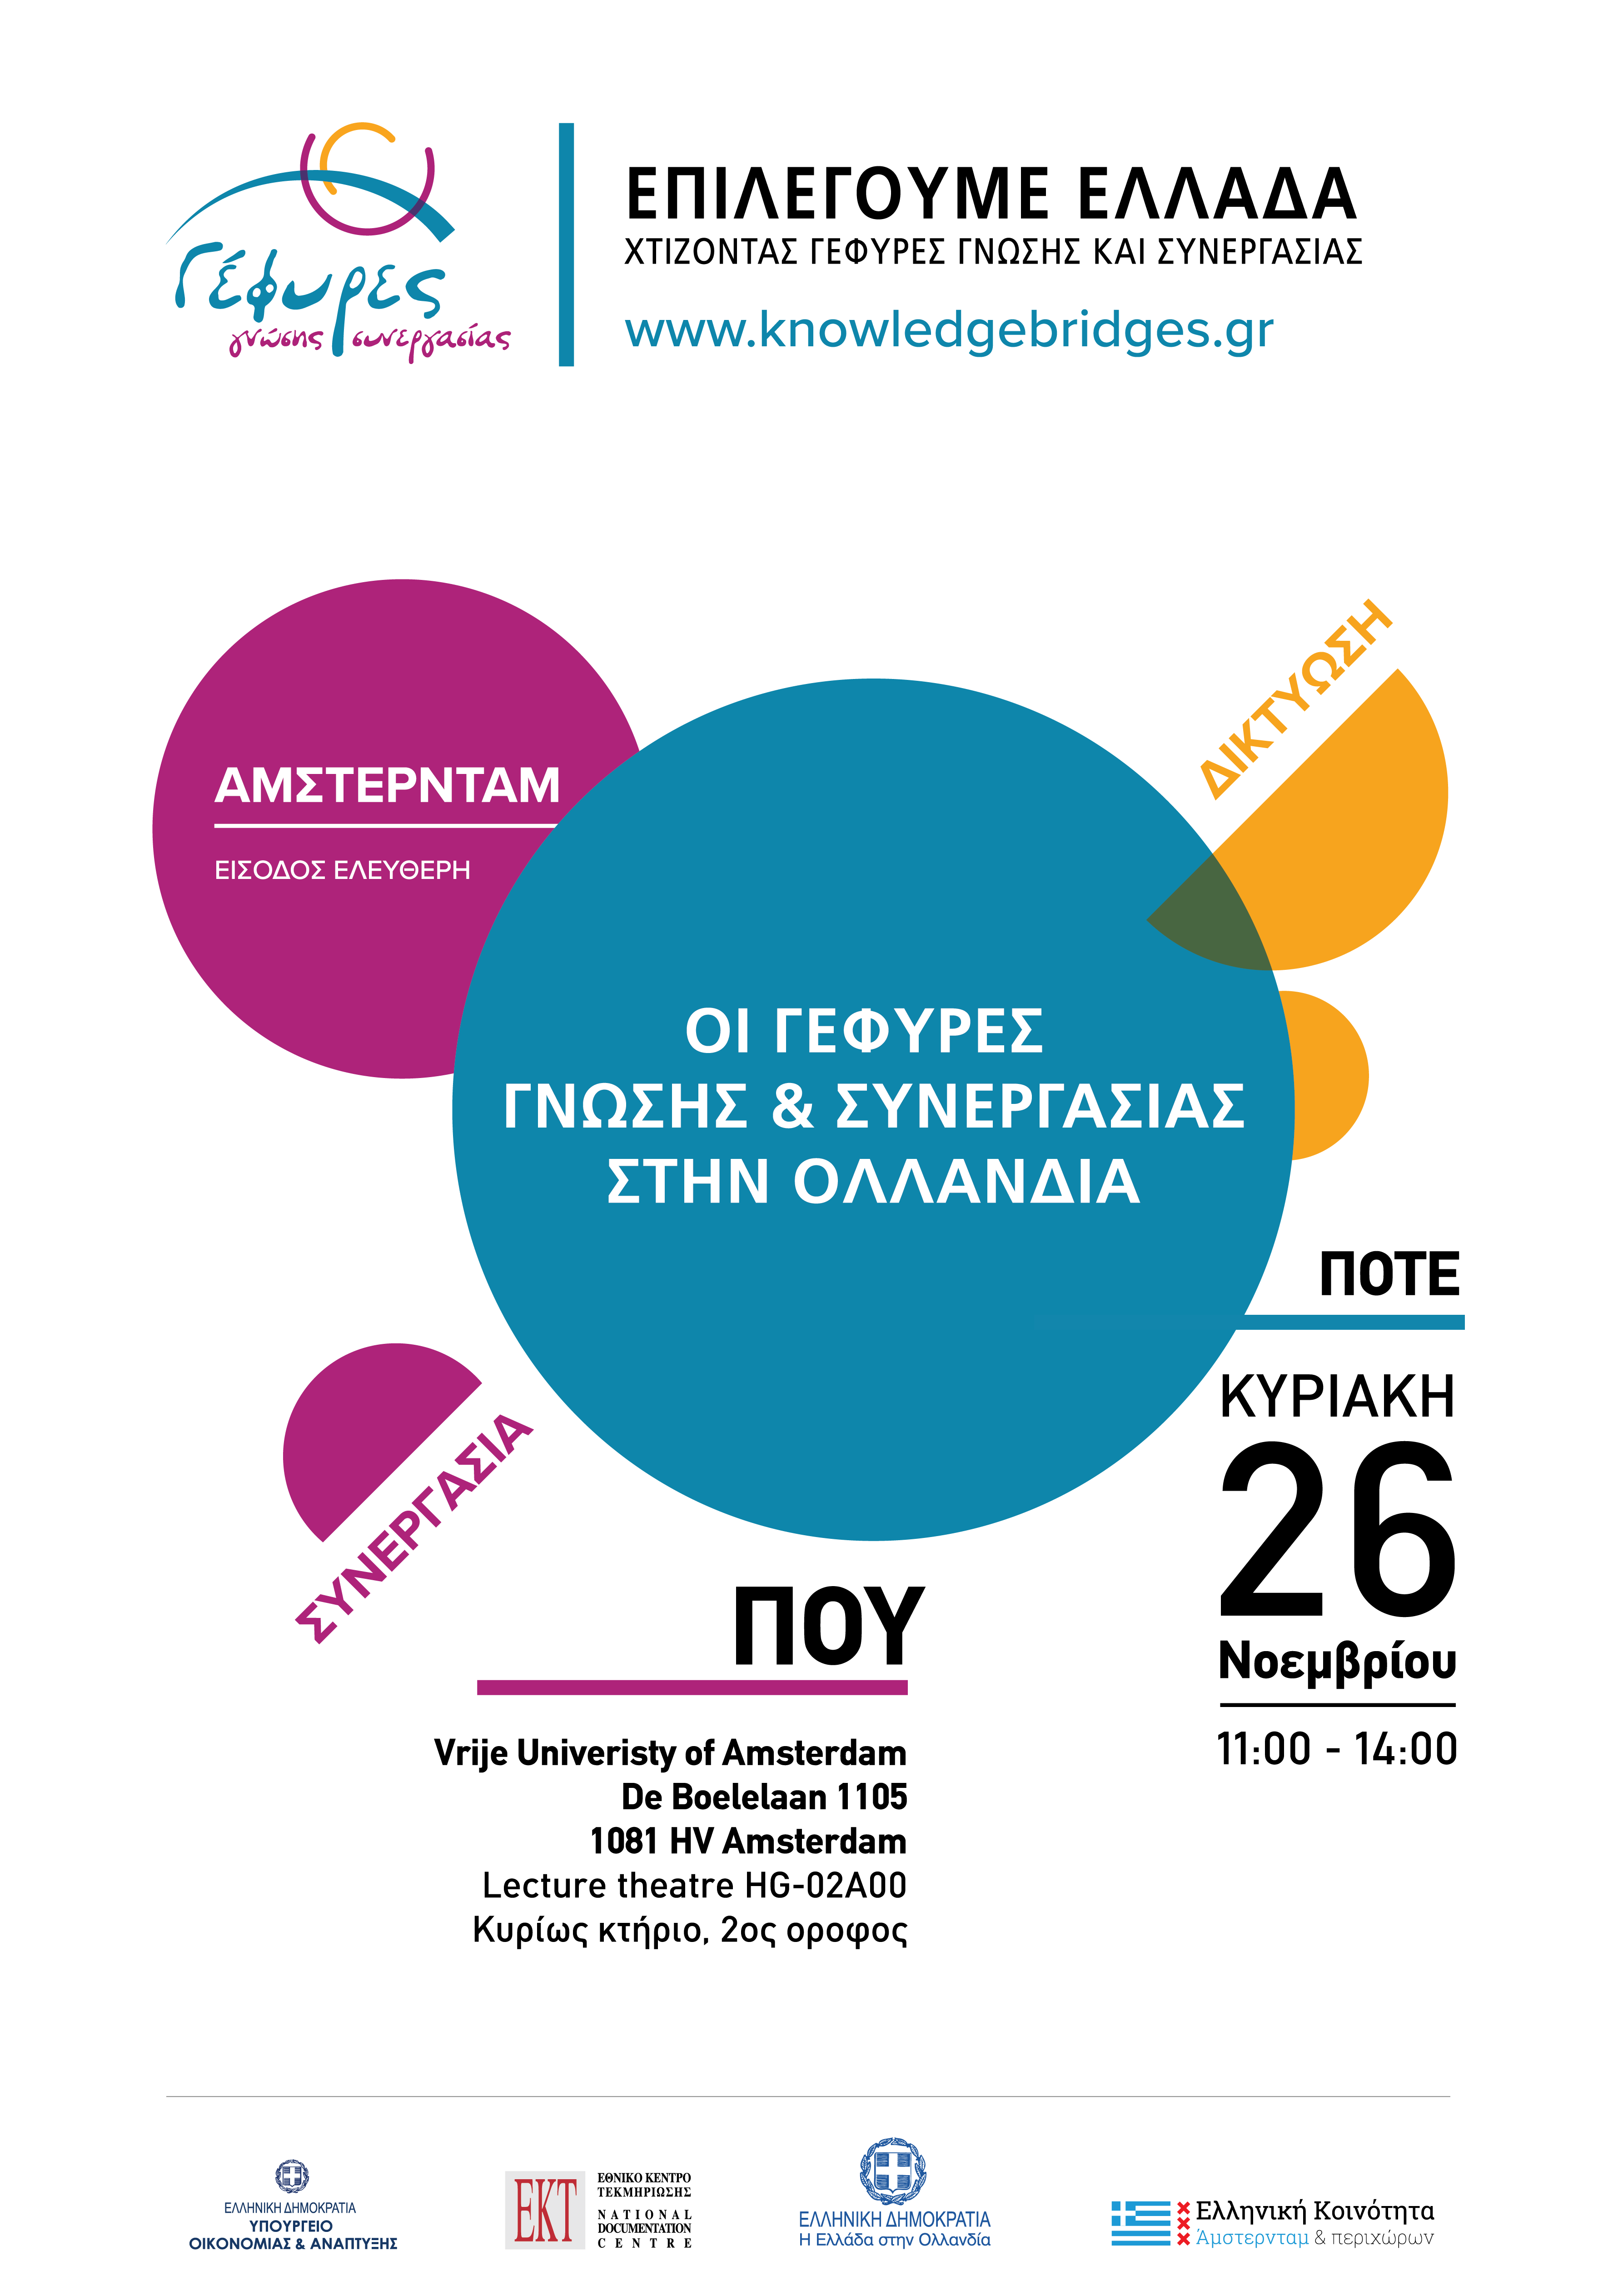 'Knowledge and Partnership Bridges' in the Netherlands